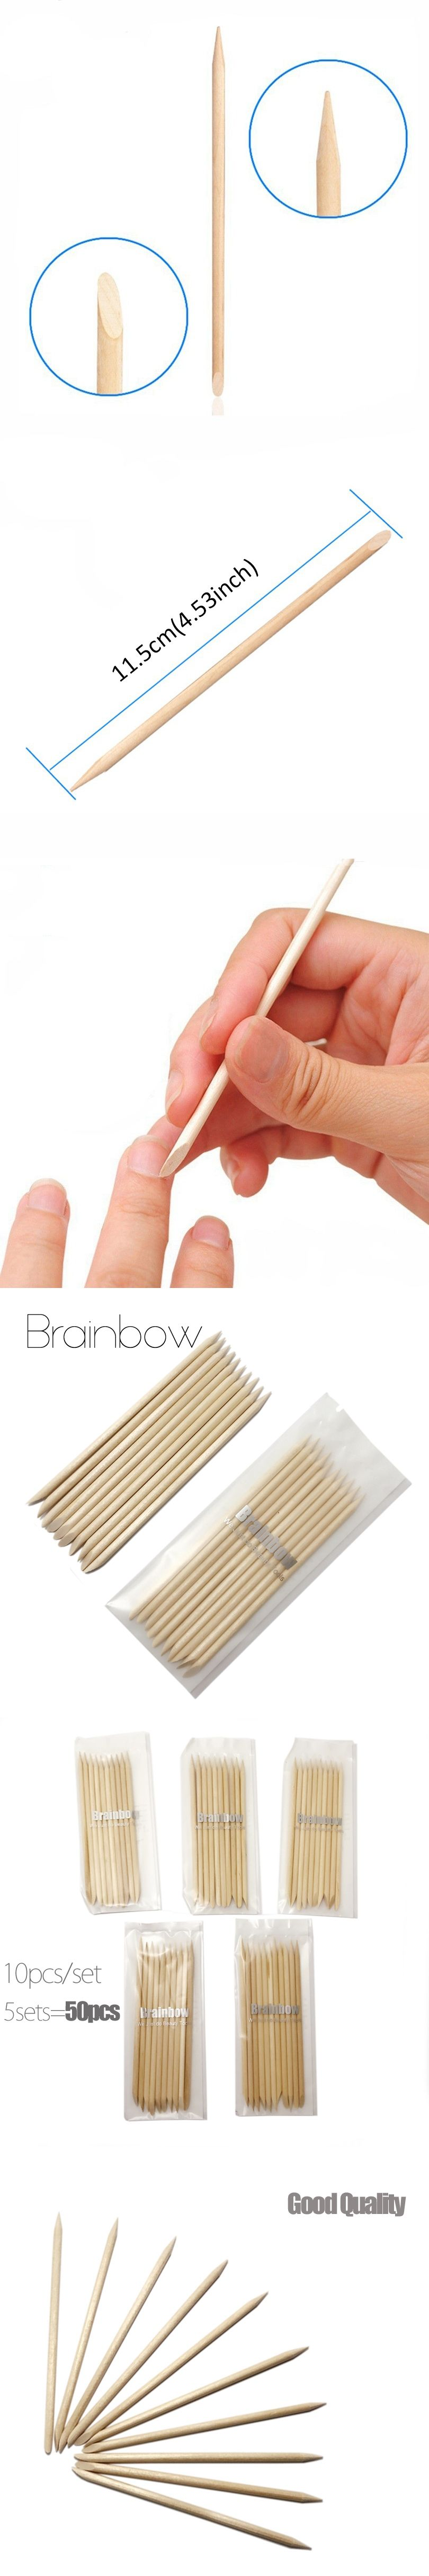 Brainbow 50pcs Nail Art Orange Wood Stick Cuticle Pusher Remover for ...